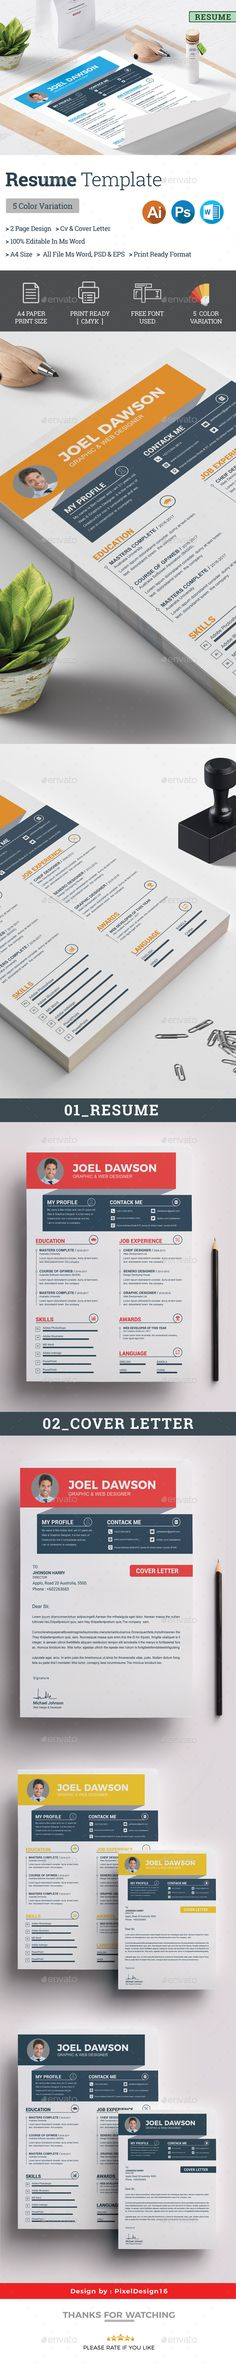 Resume Template Resume ideas and